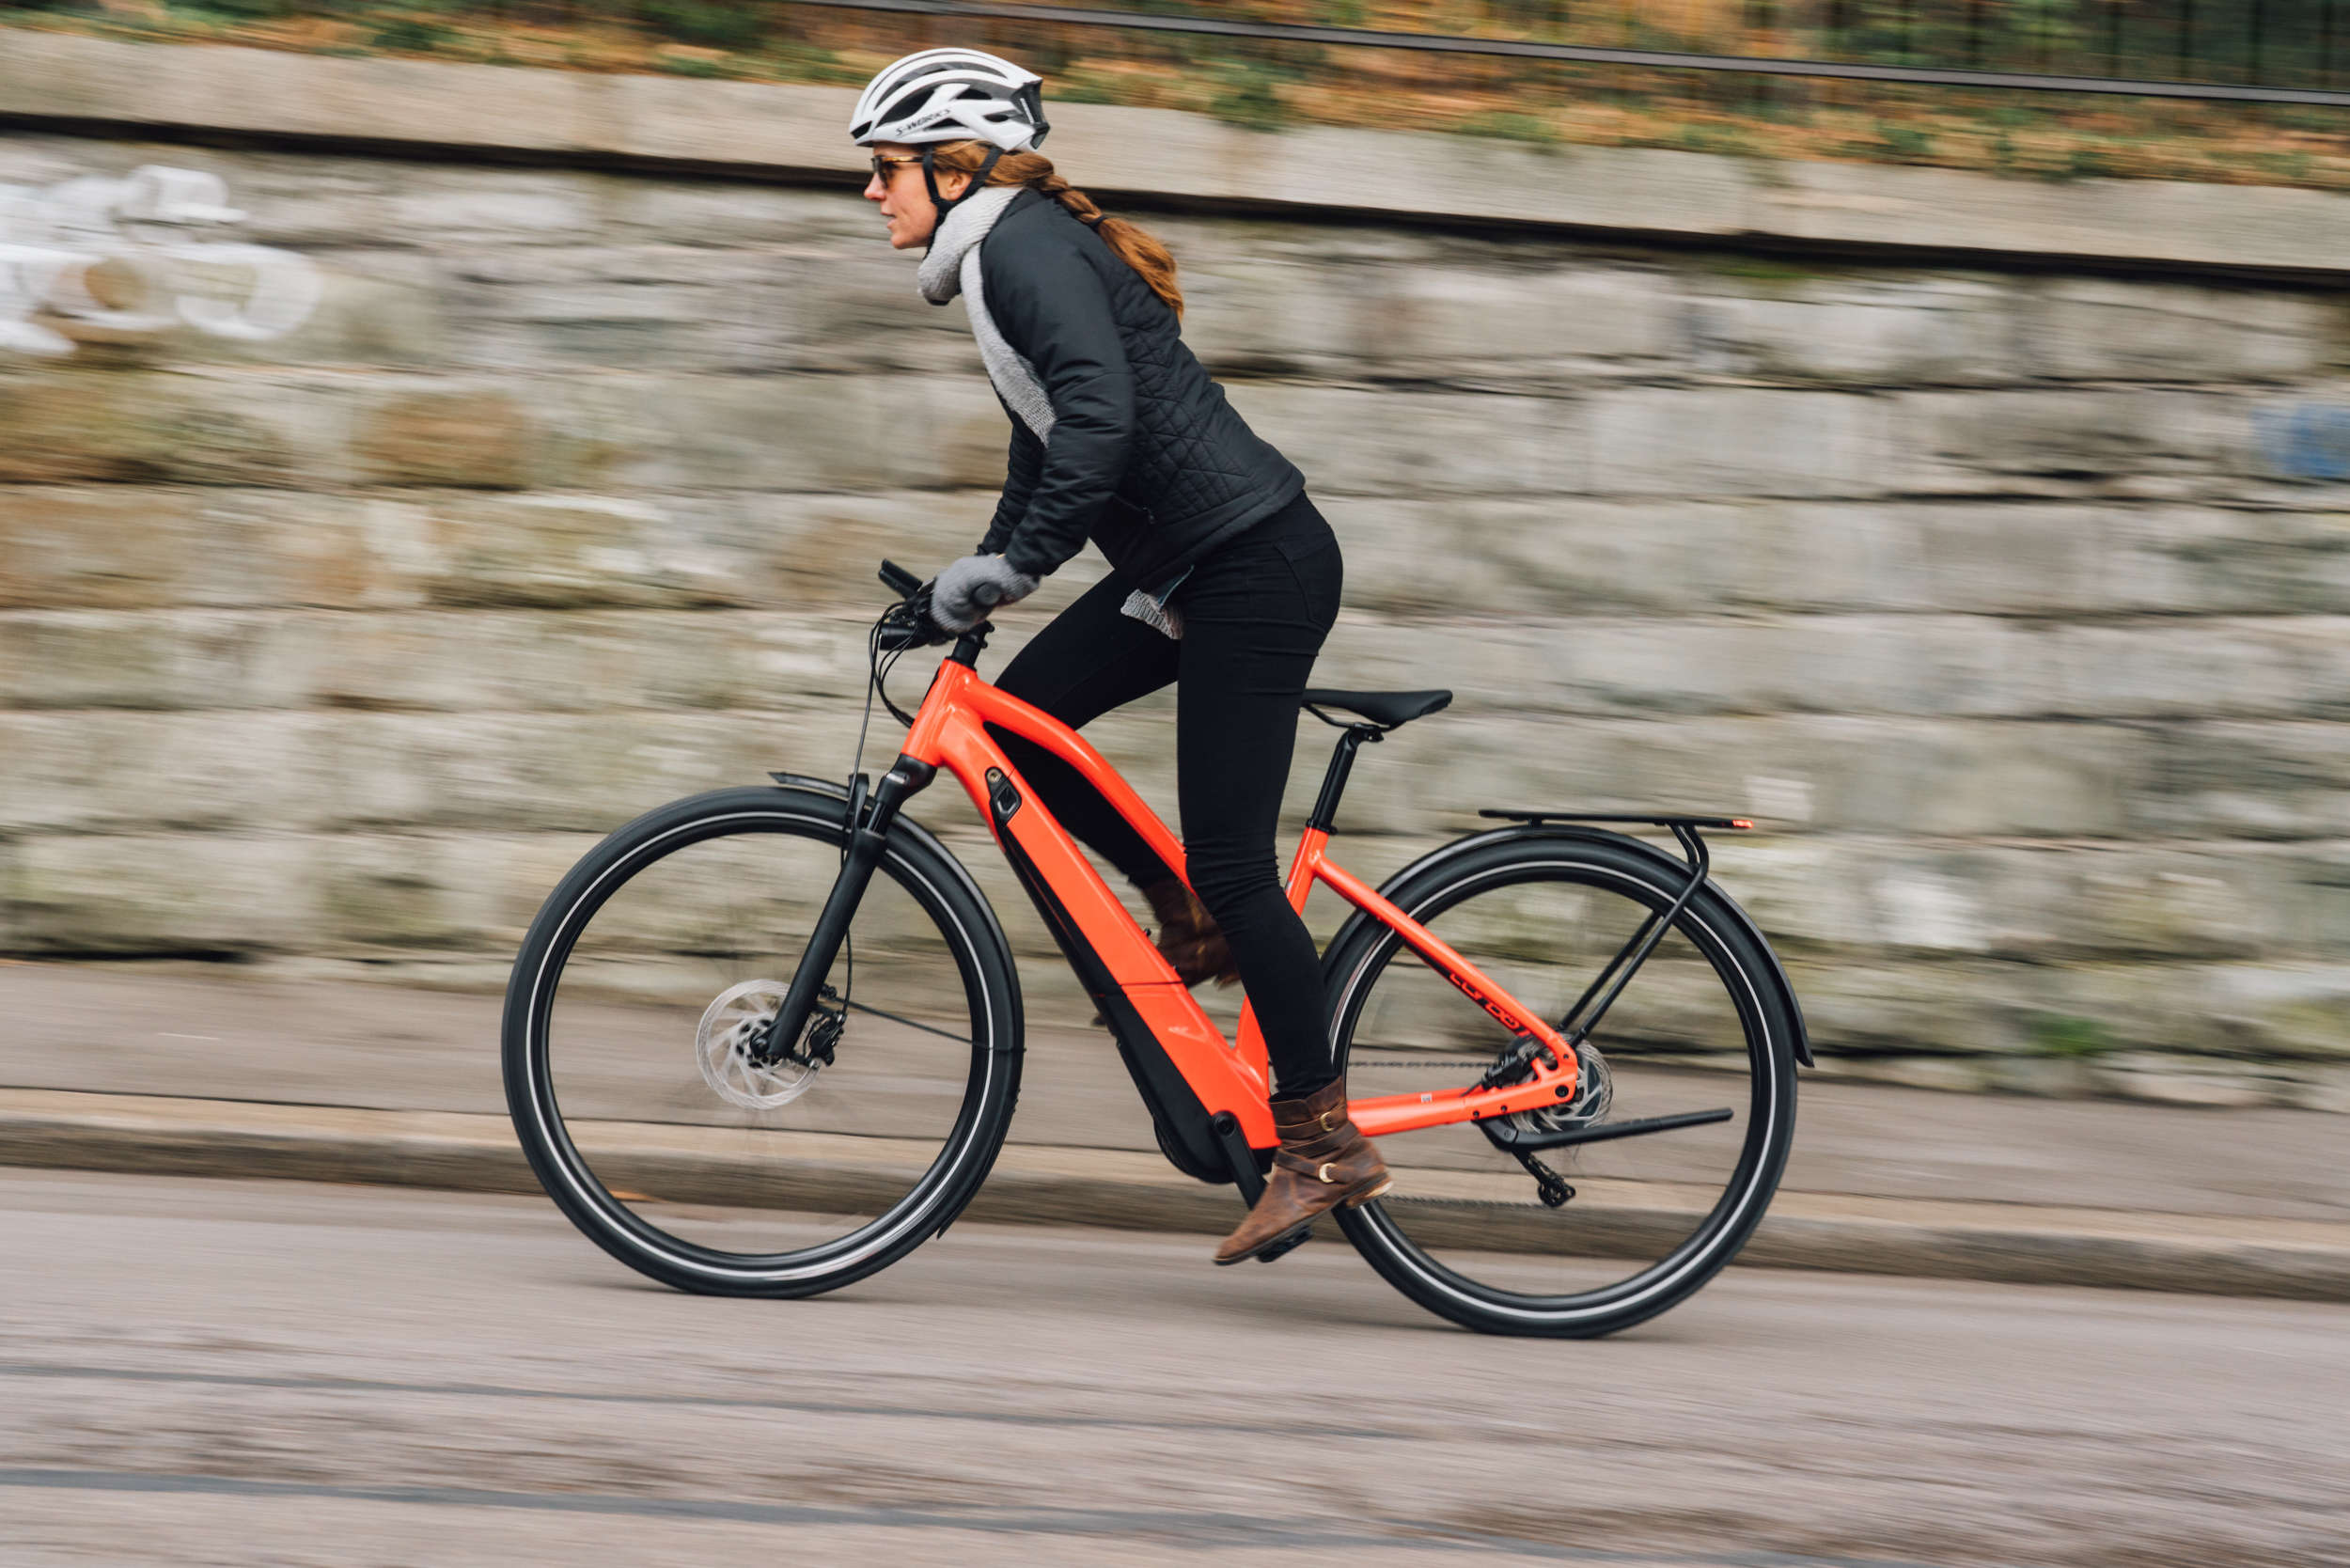 ebike licensing, e-bike registration, electric bicycle laws, e bike regulations, Mesa, Gilbert, Chandler, Ahwatukee, Higley, Queen Creek, Phoenix, AZ, arizona